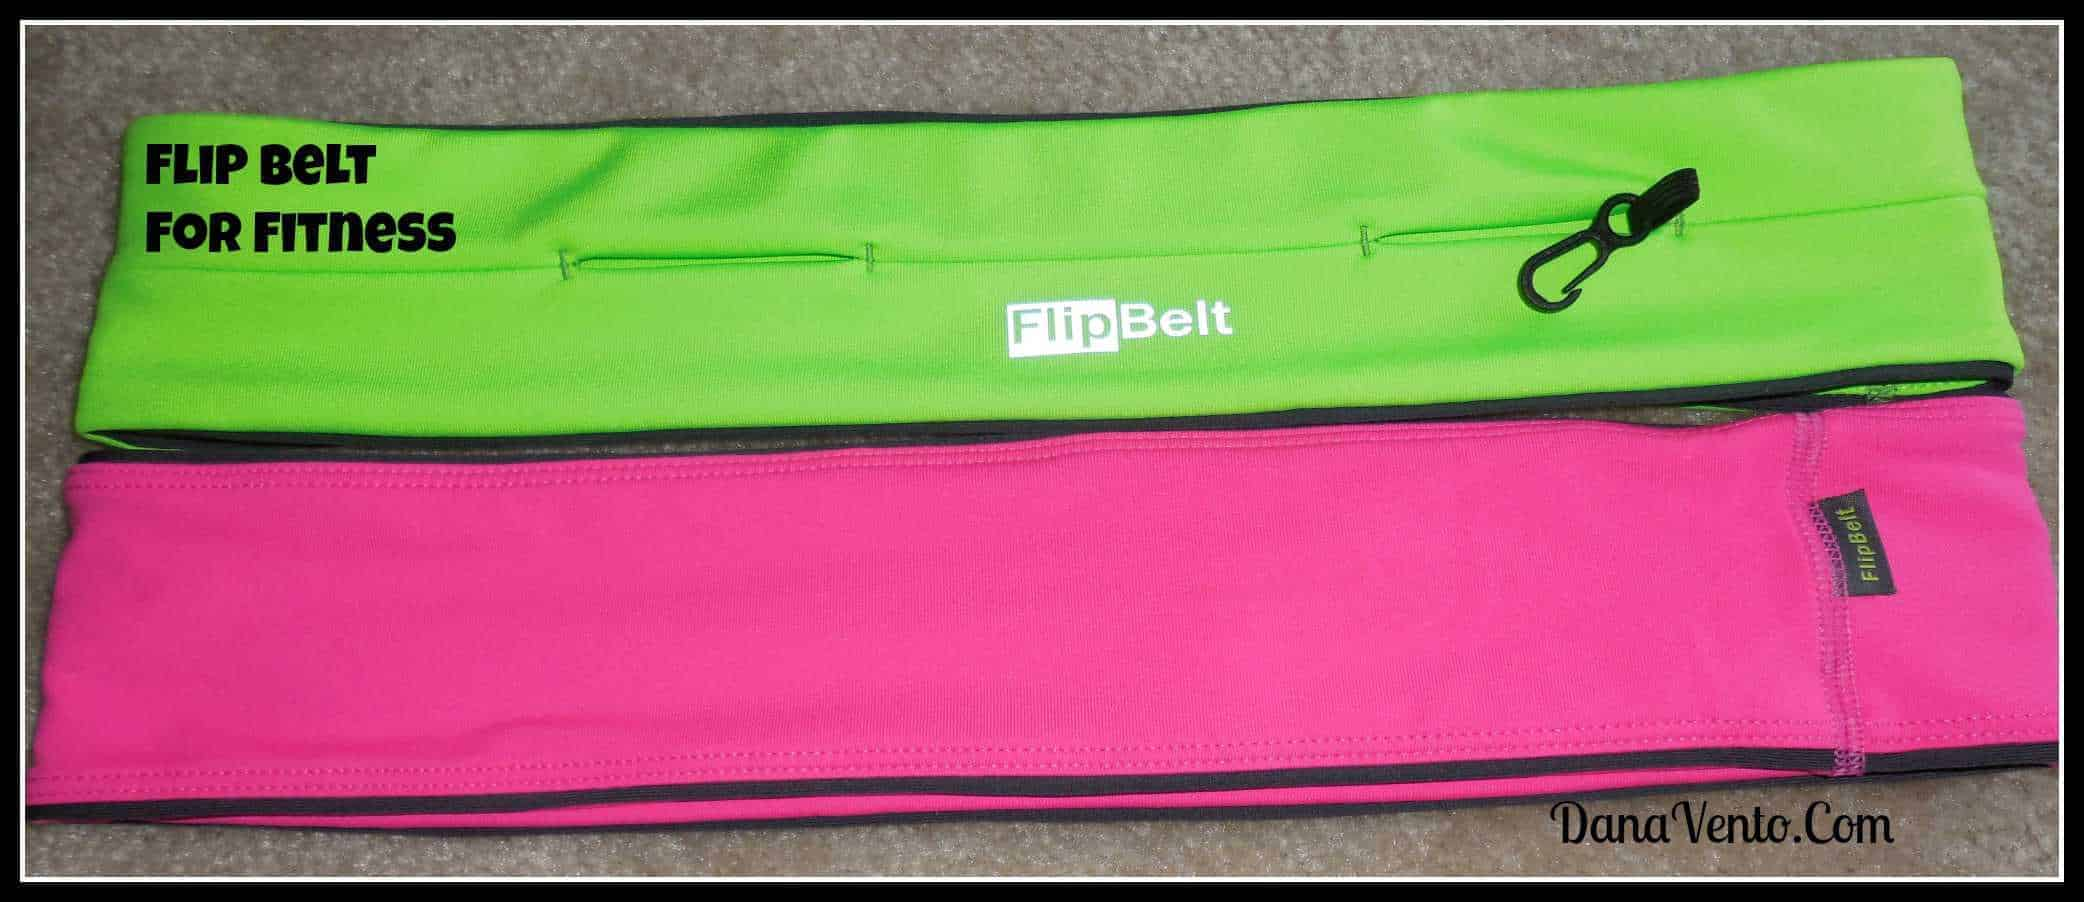 Fitness and The Flip Belt